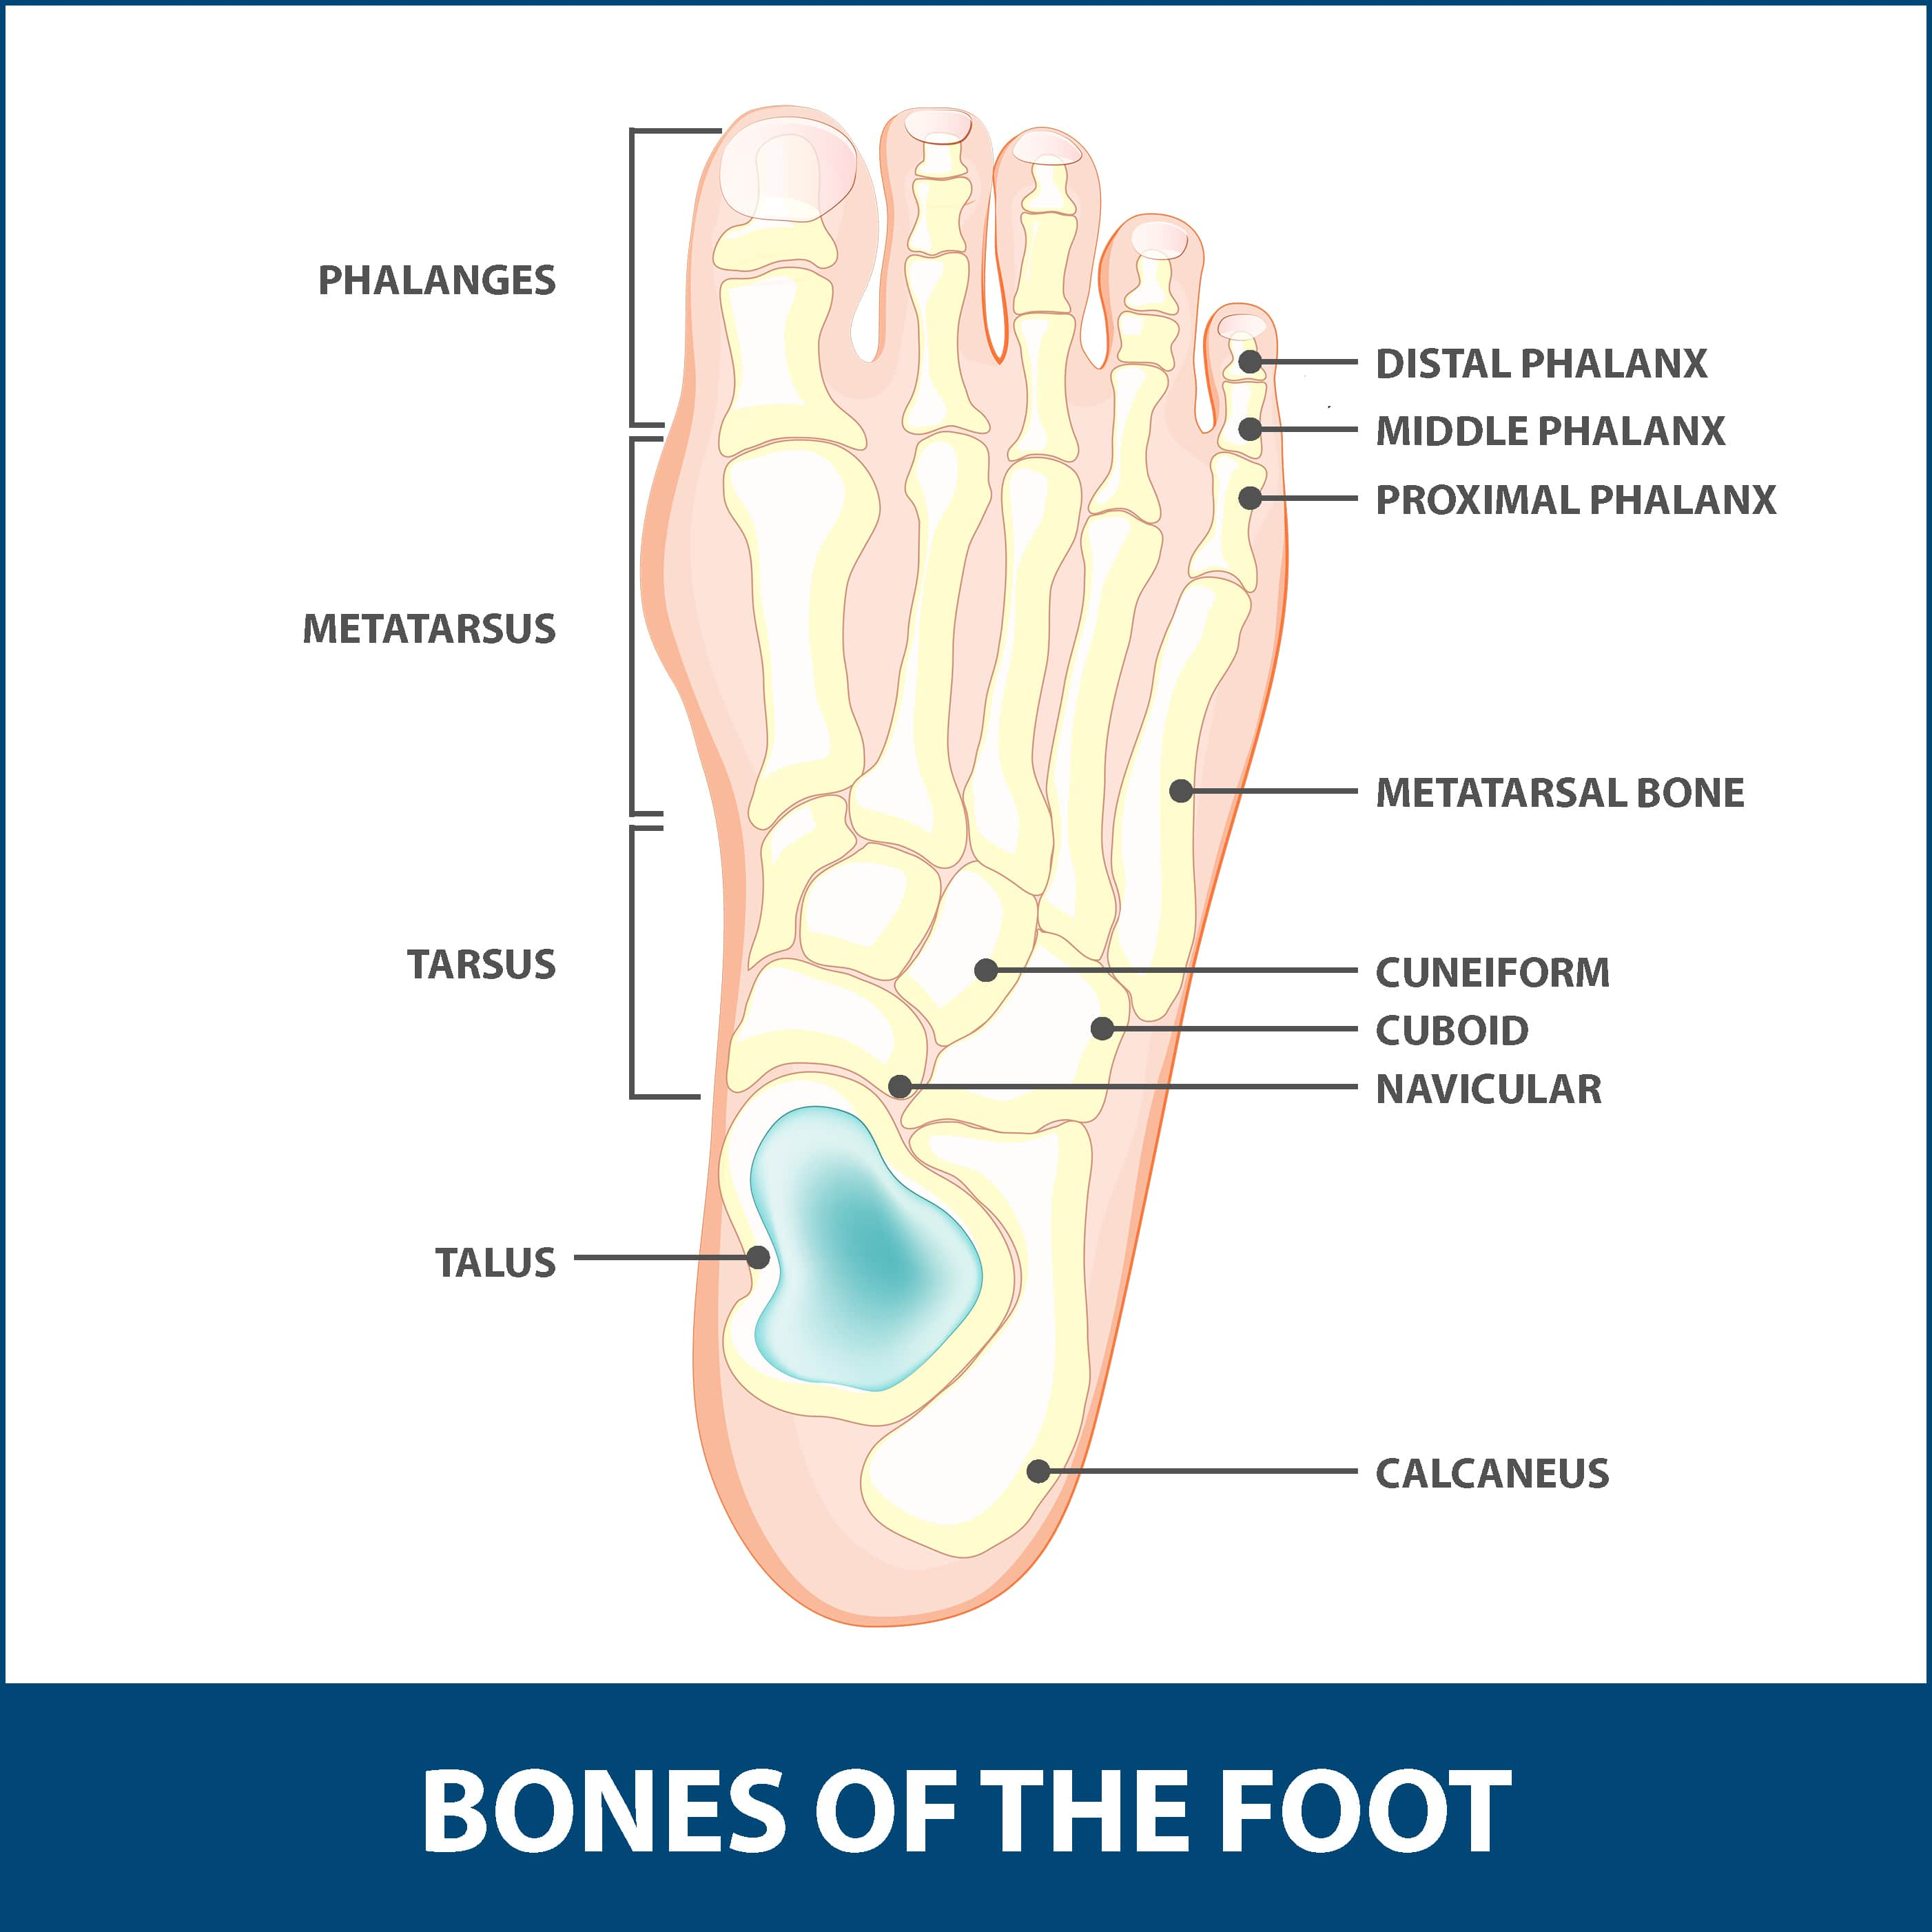 Hallux Rigidus, diagram of the bones of the foot